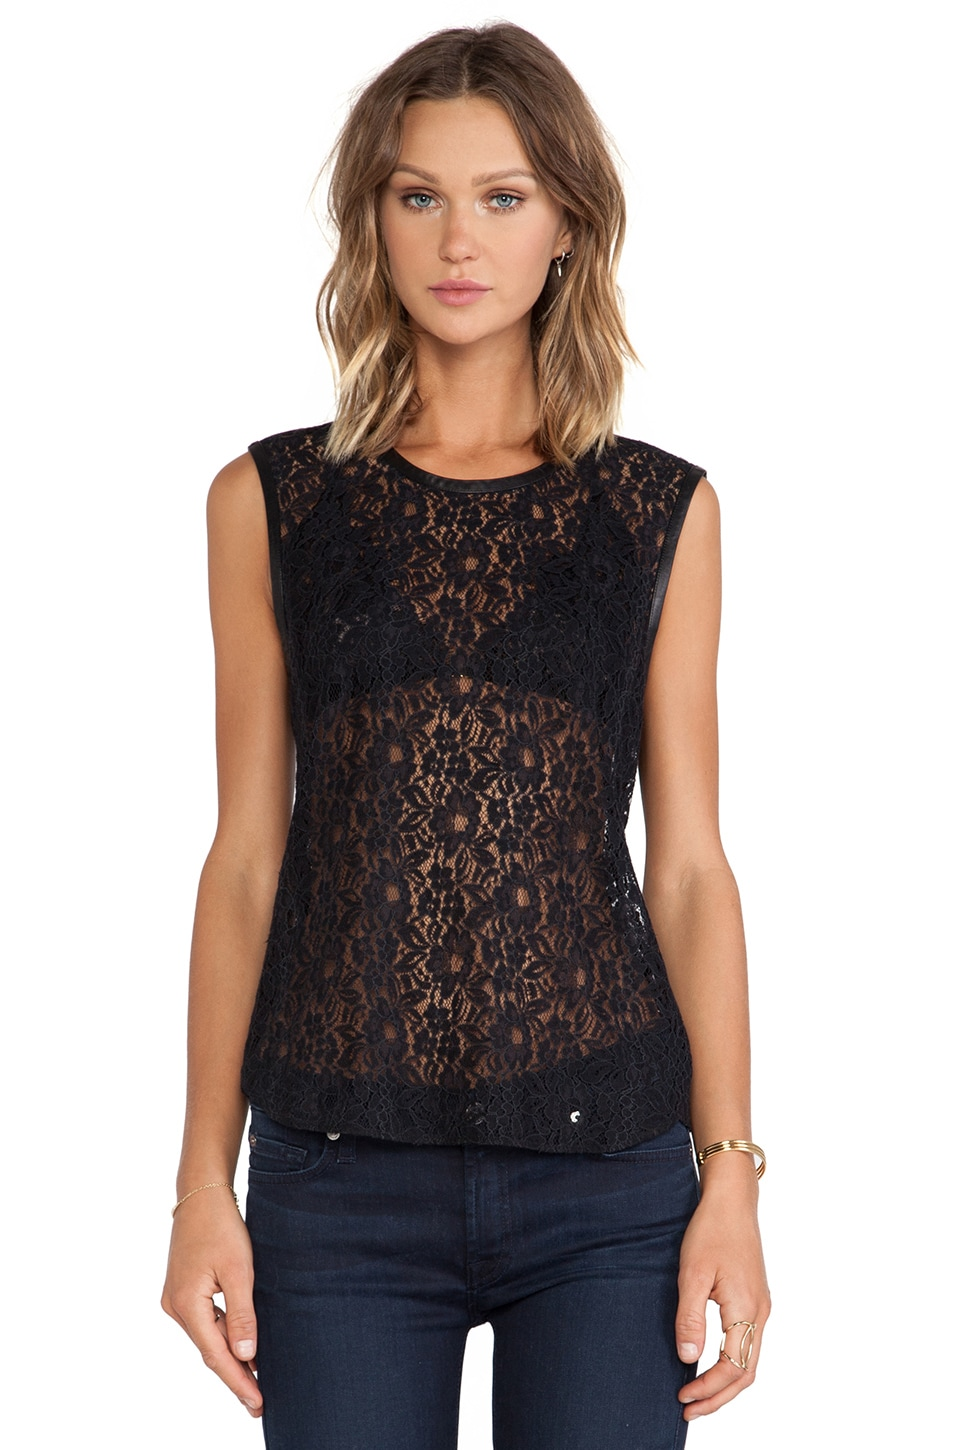 7 For All Mankind Lace Shell w/ Leather Trim in Black